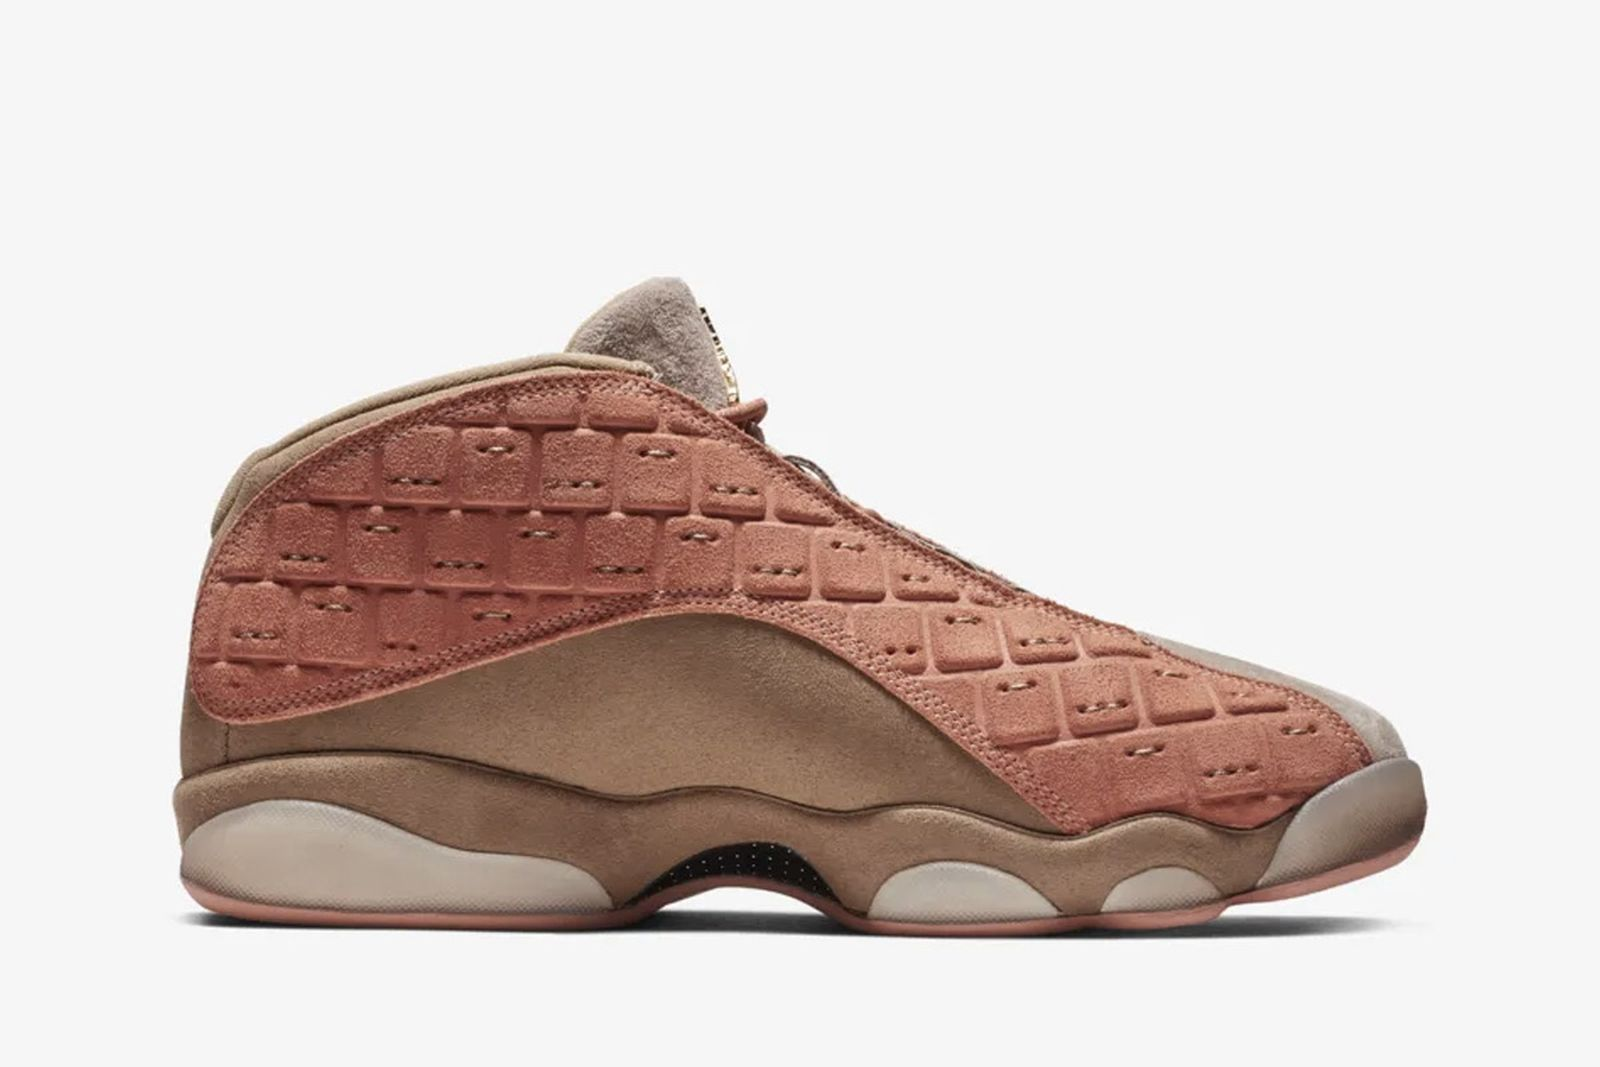 clot air jordan 13 low terracotta warrior release date price info